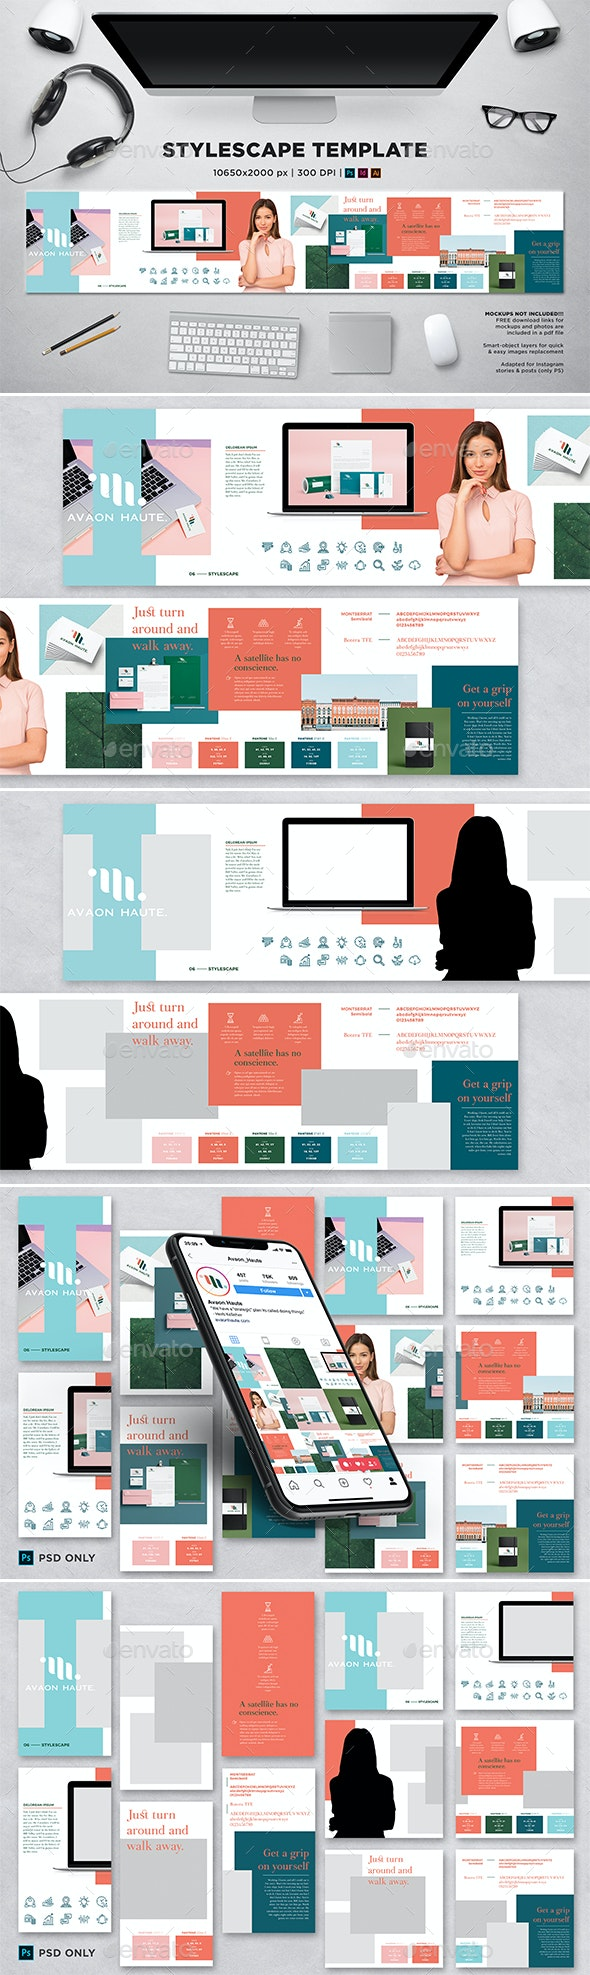 Stylescape / Moodboard Template 06 - Print Templates